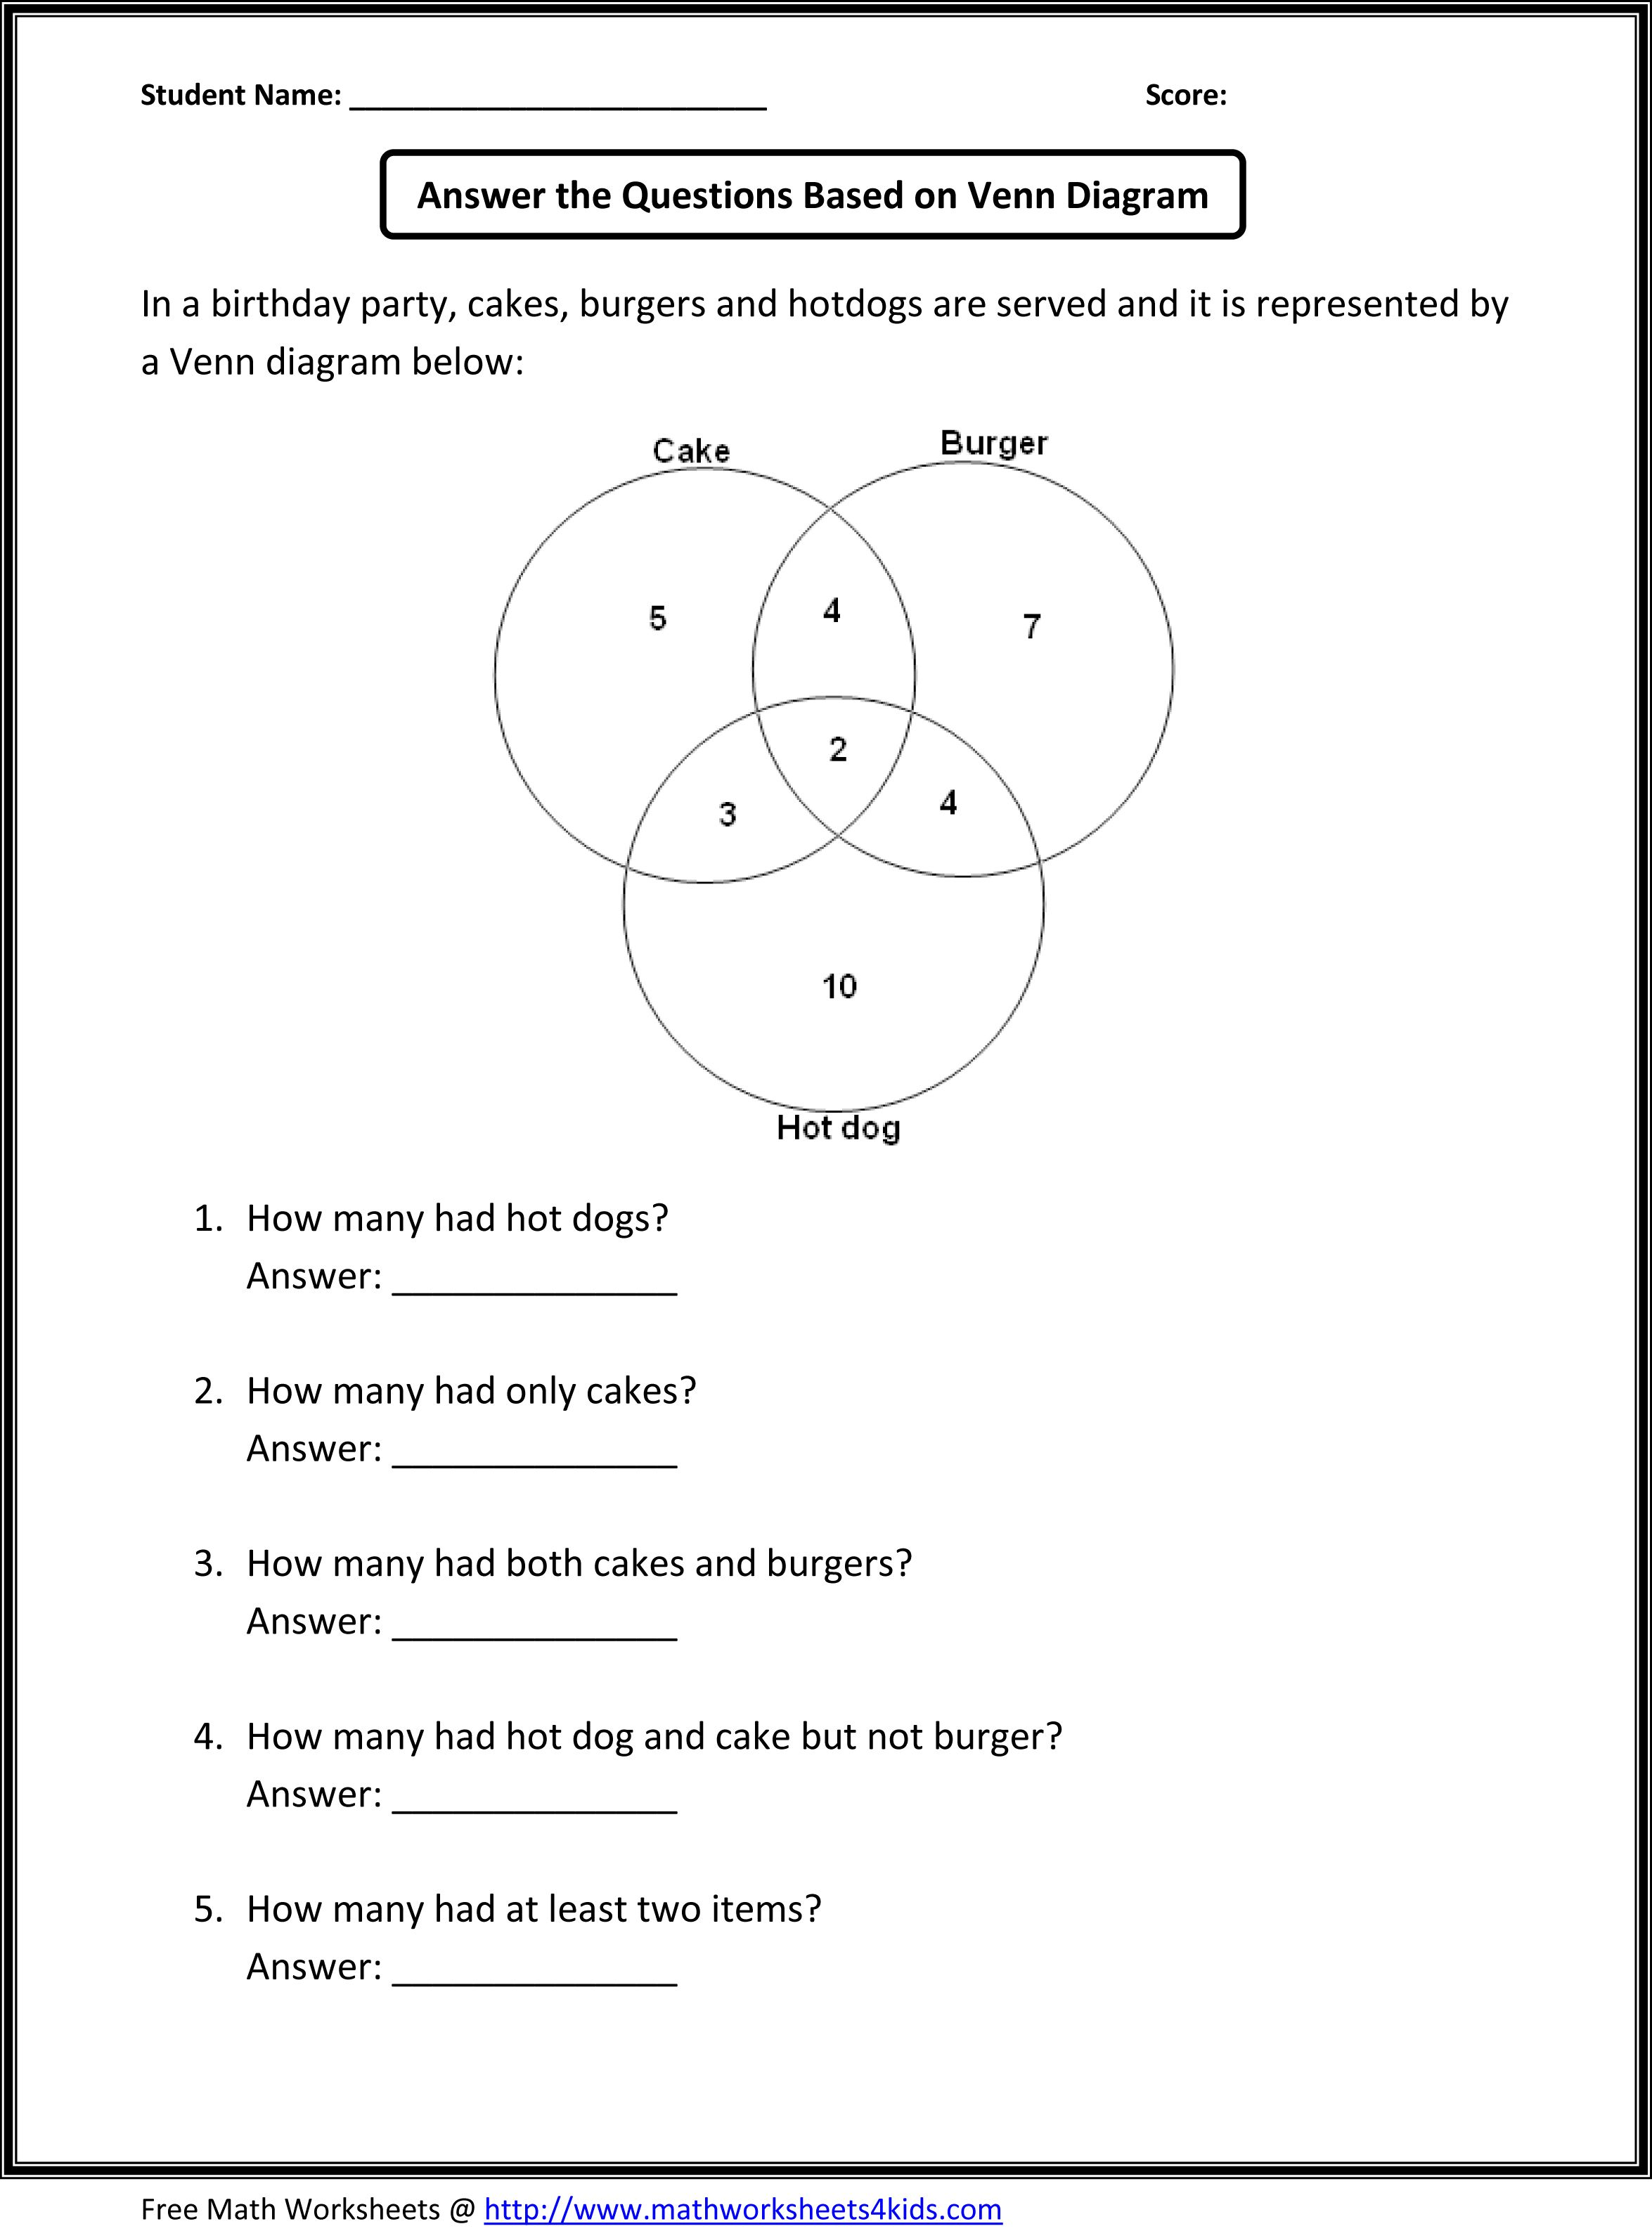 Uncategorized Fifth Grade Math Worksheets printable 5th grade math test 2 digit addition and subtraction venn diagram activities free 1st leveled reading books 49cb5df227bebe37462741b3a6a98a45 activitieshtml print